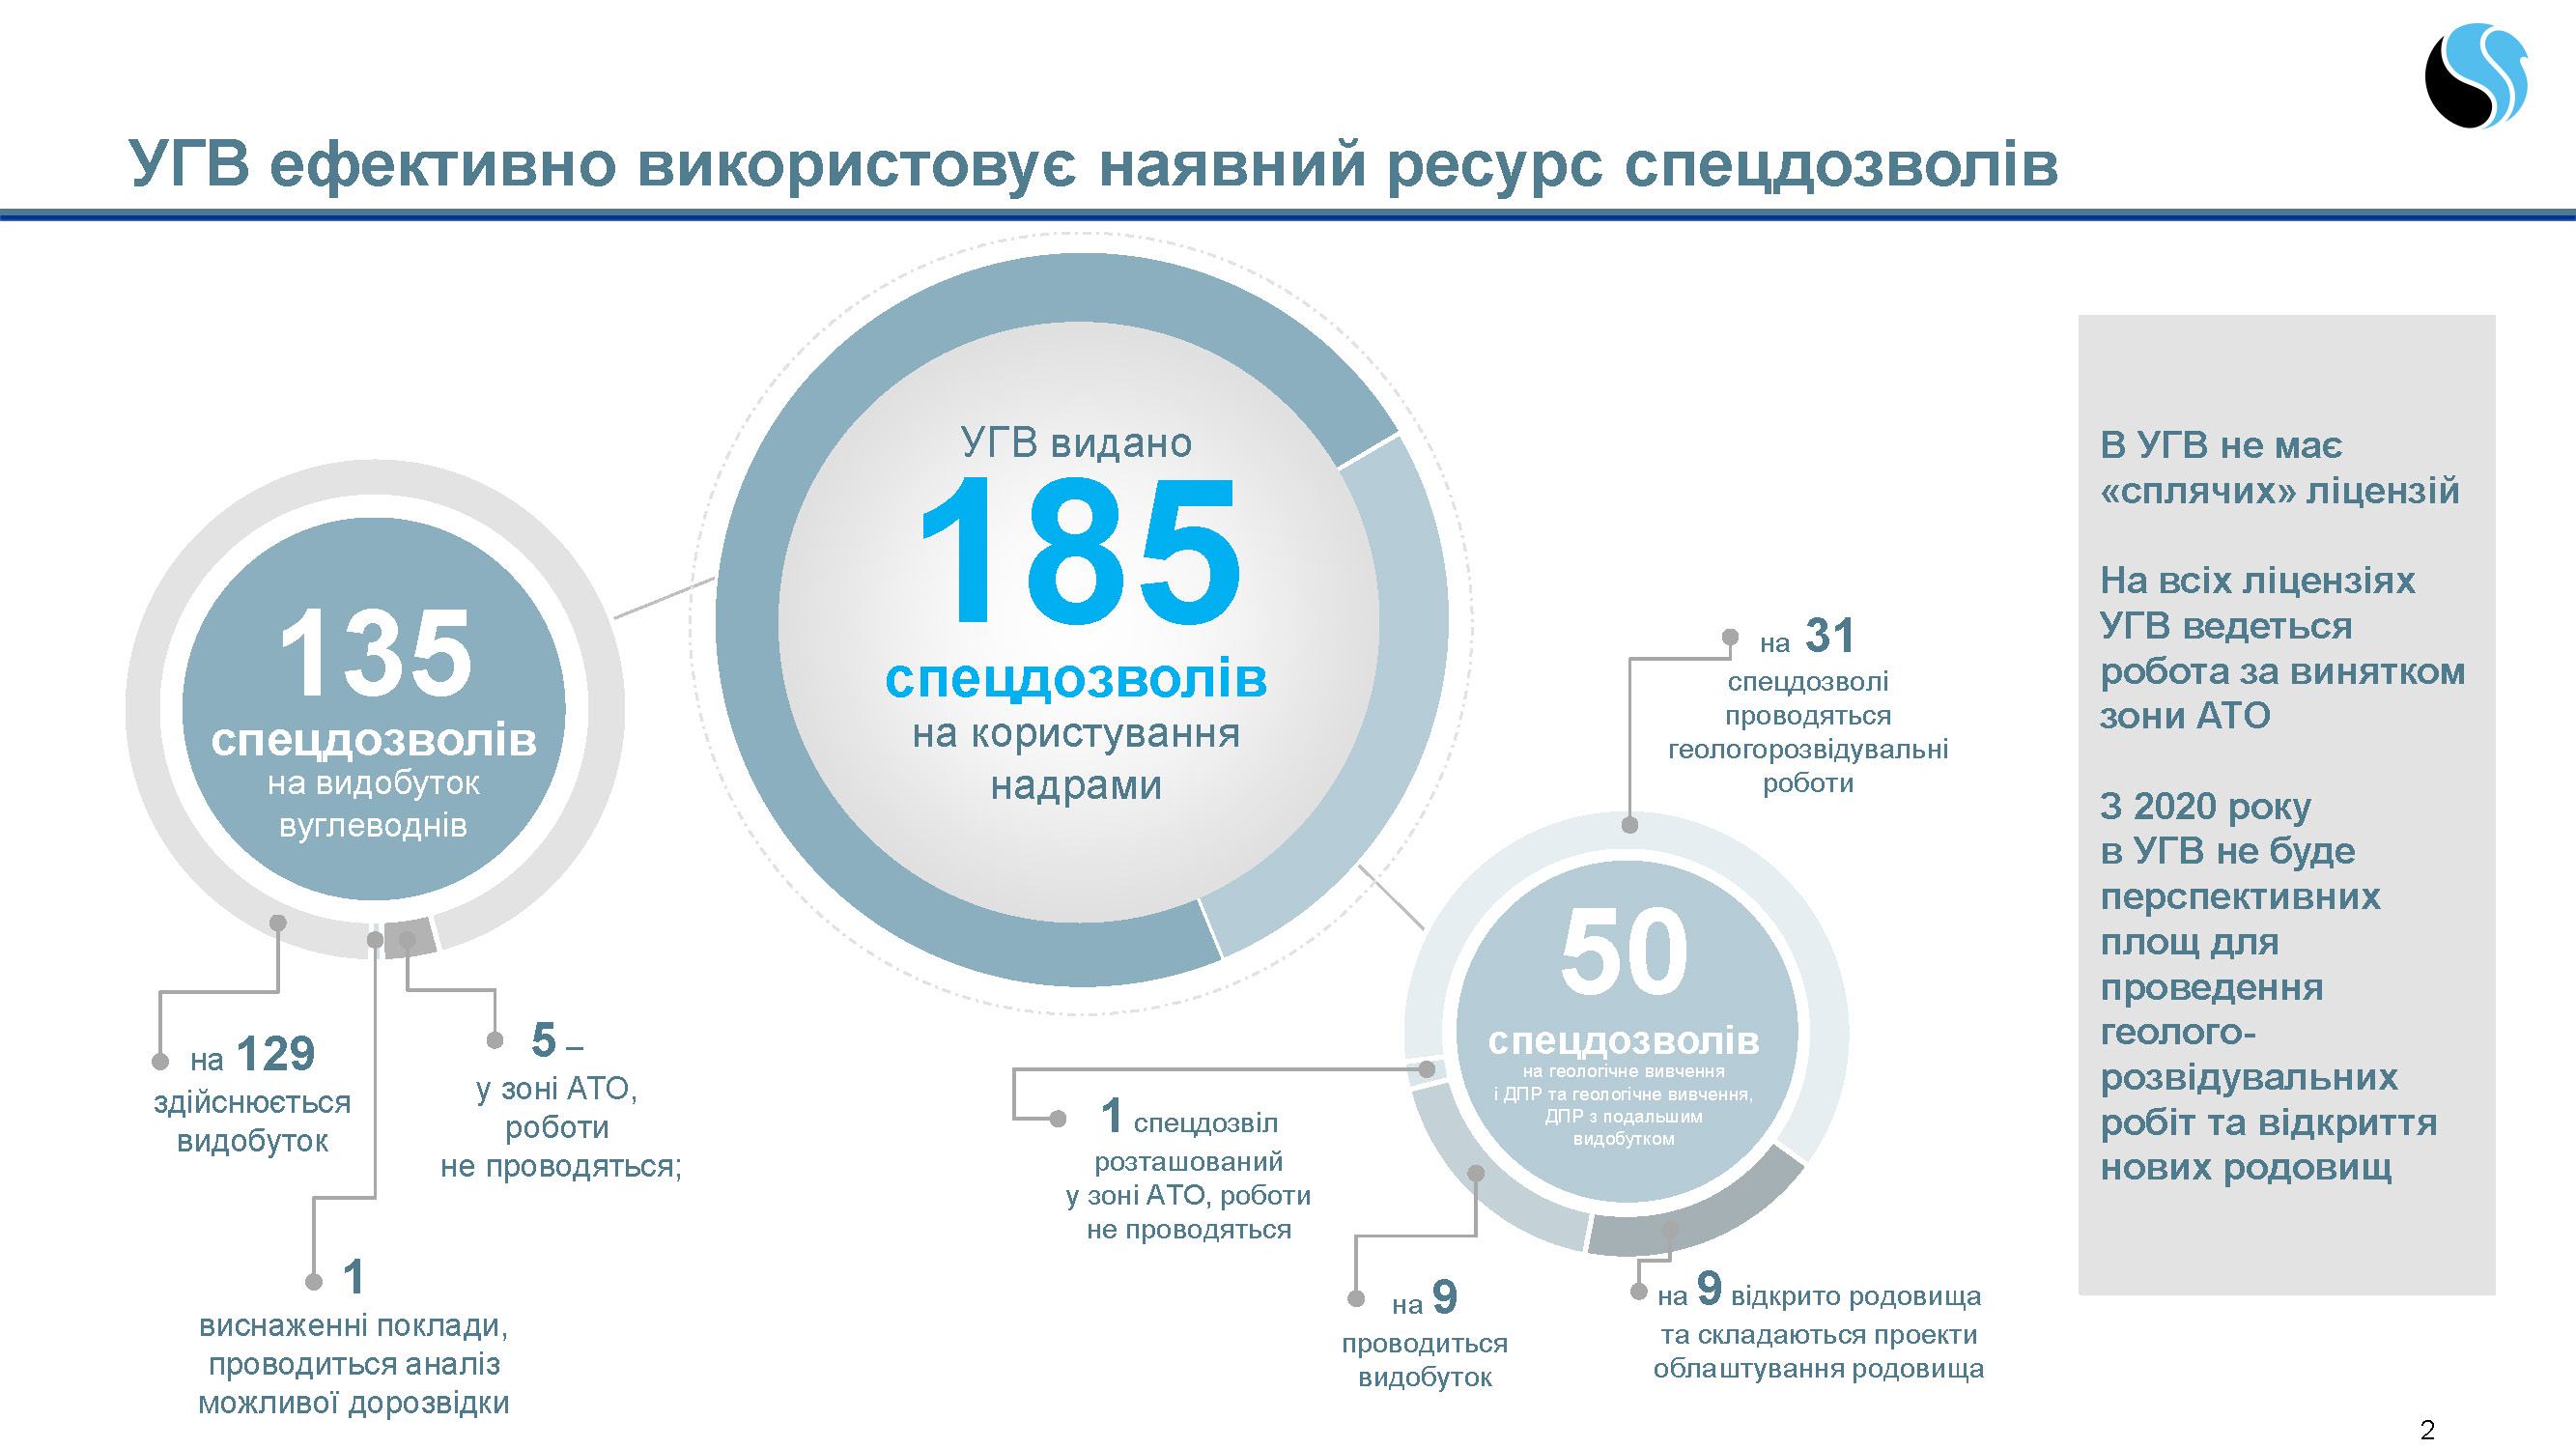 PJSC UkrGasVydobuvannya declares that it conducts activities using all the licenses granted to the company